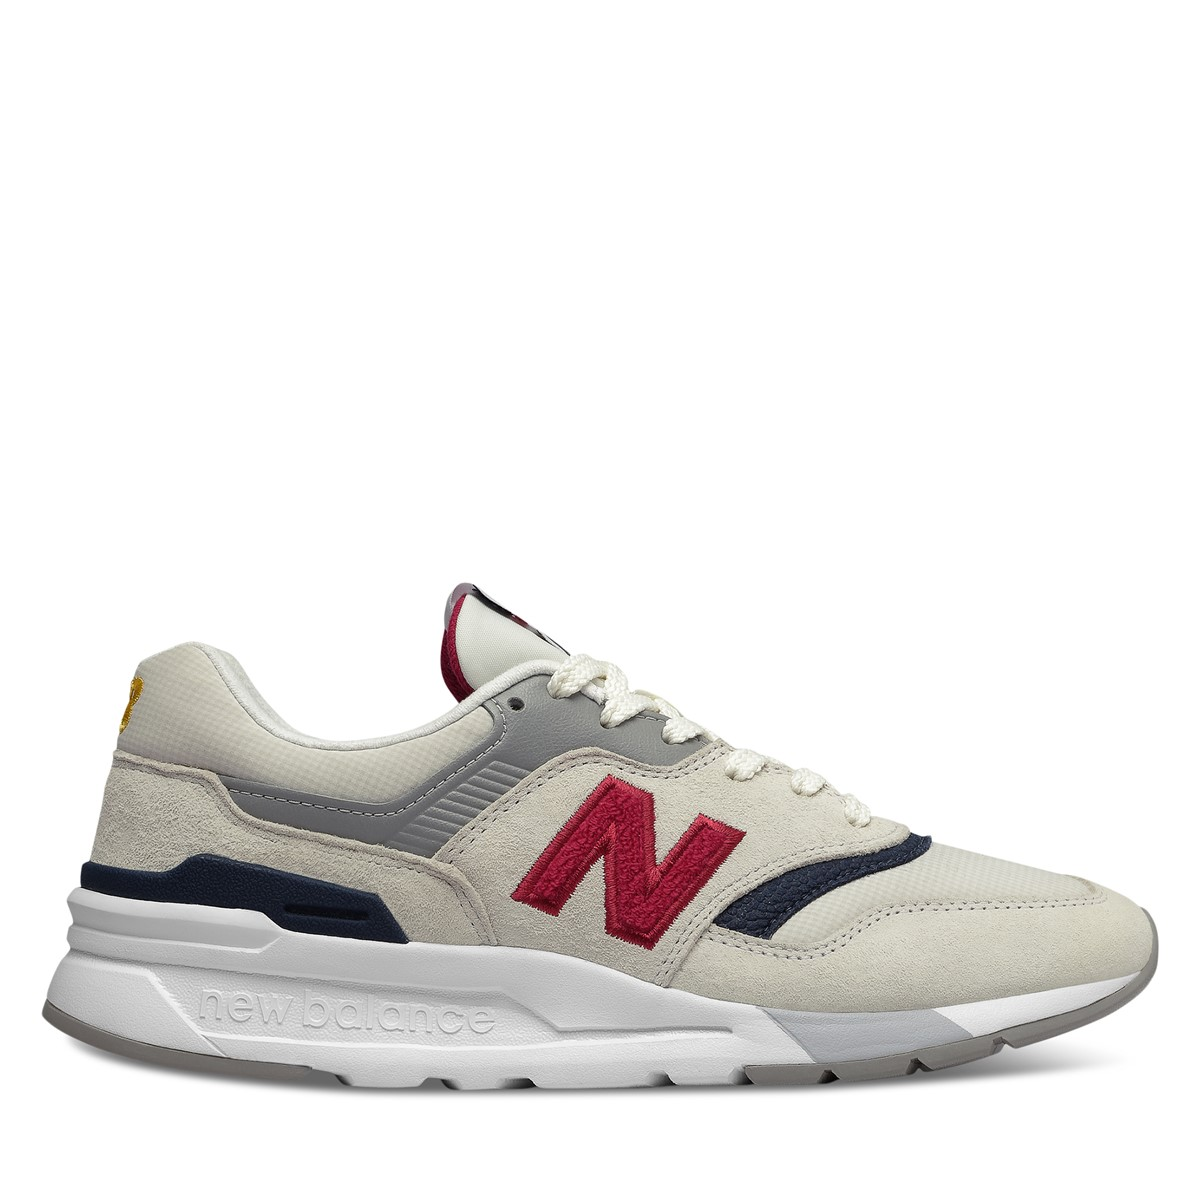 Women's 997H Sneakers in Off-White/Navy/Red